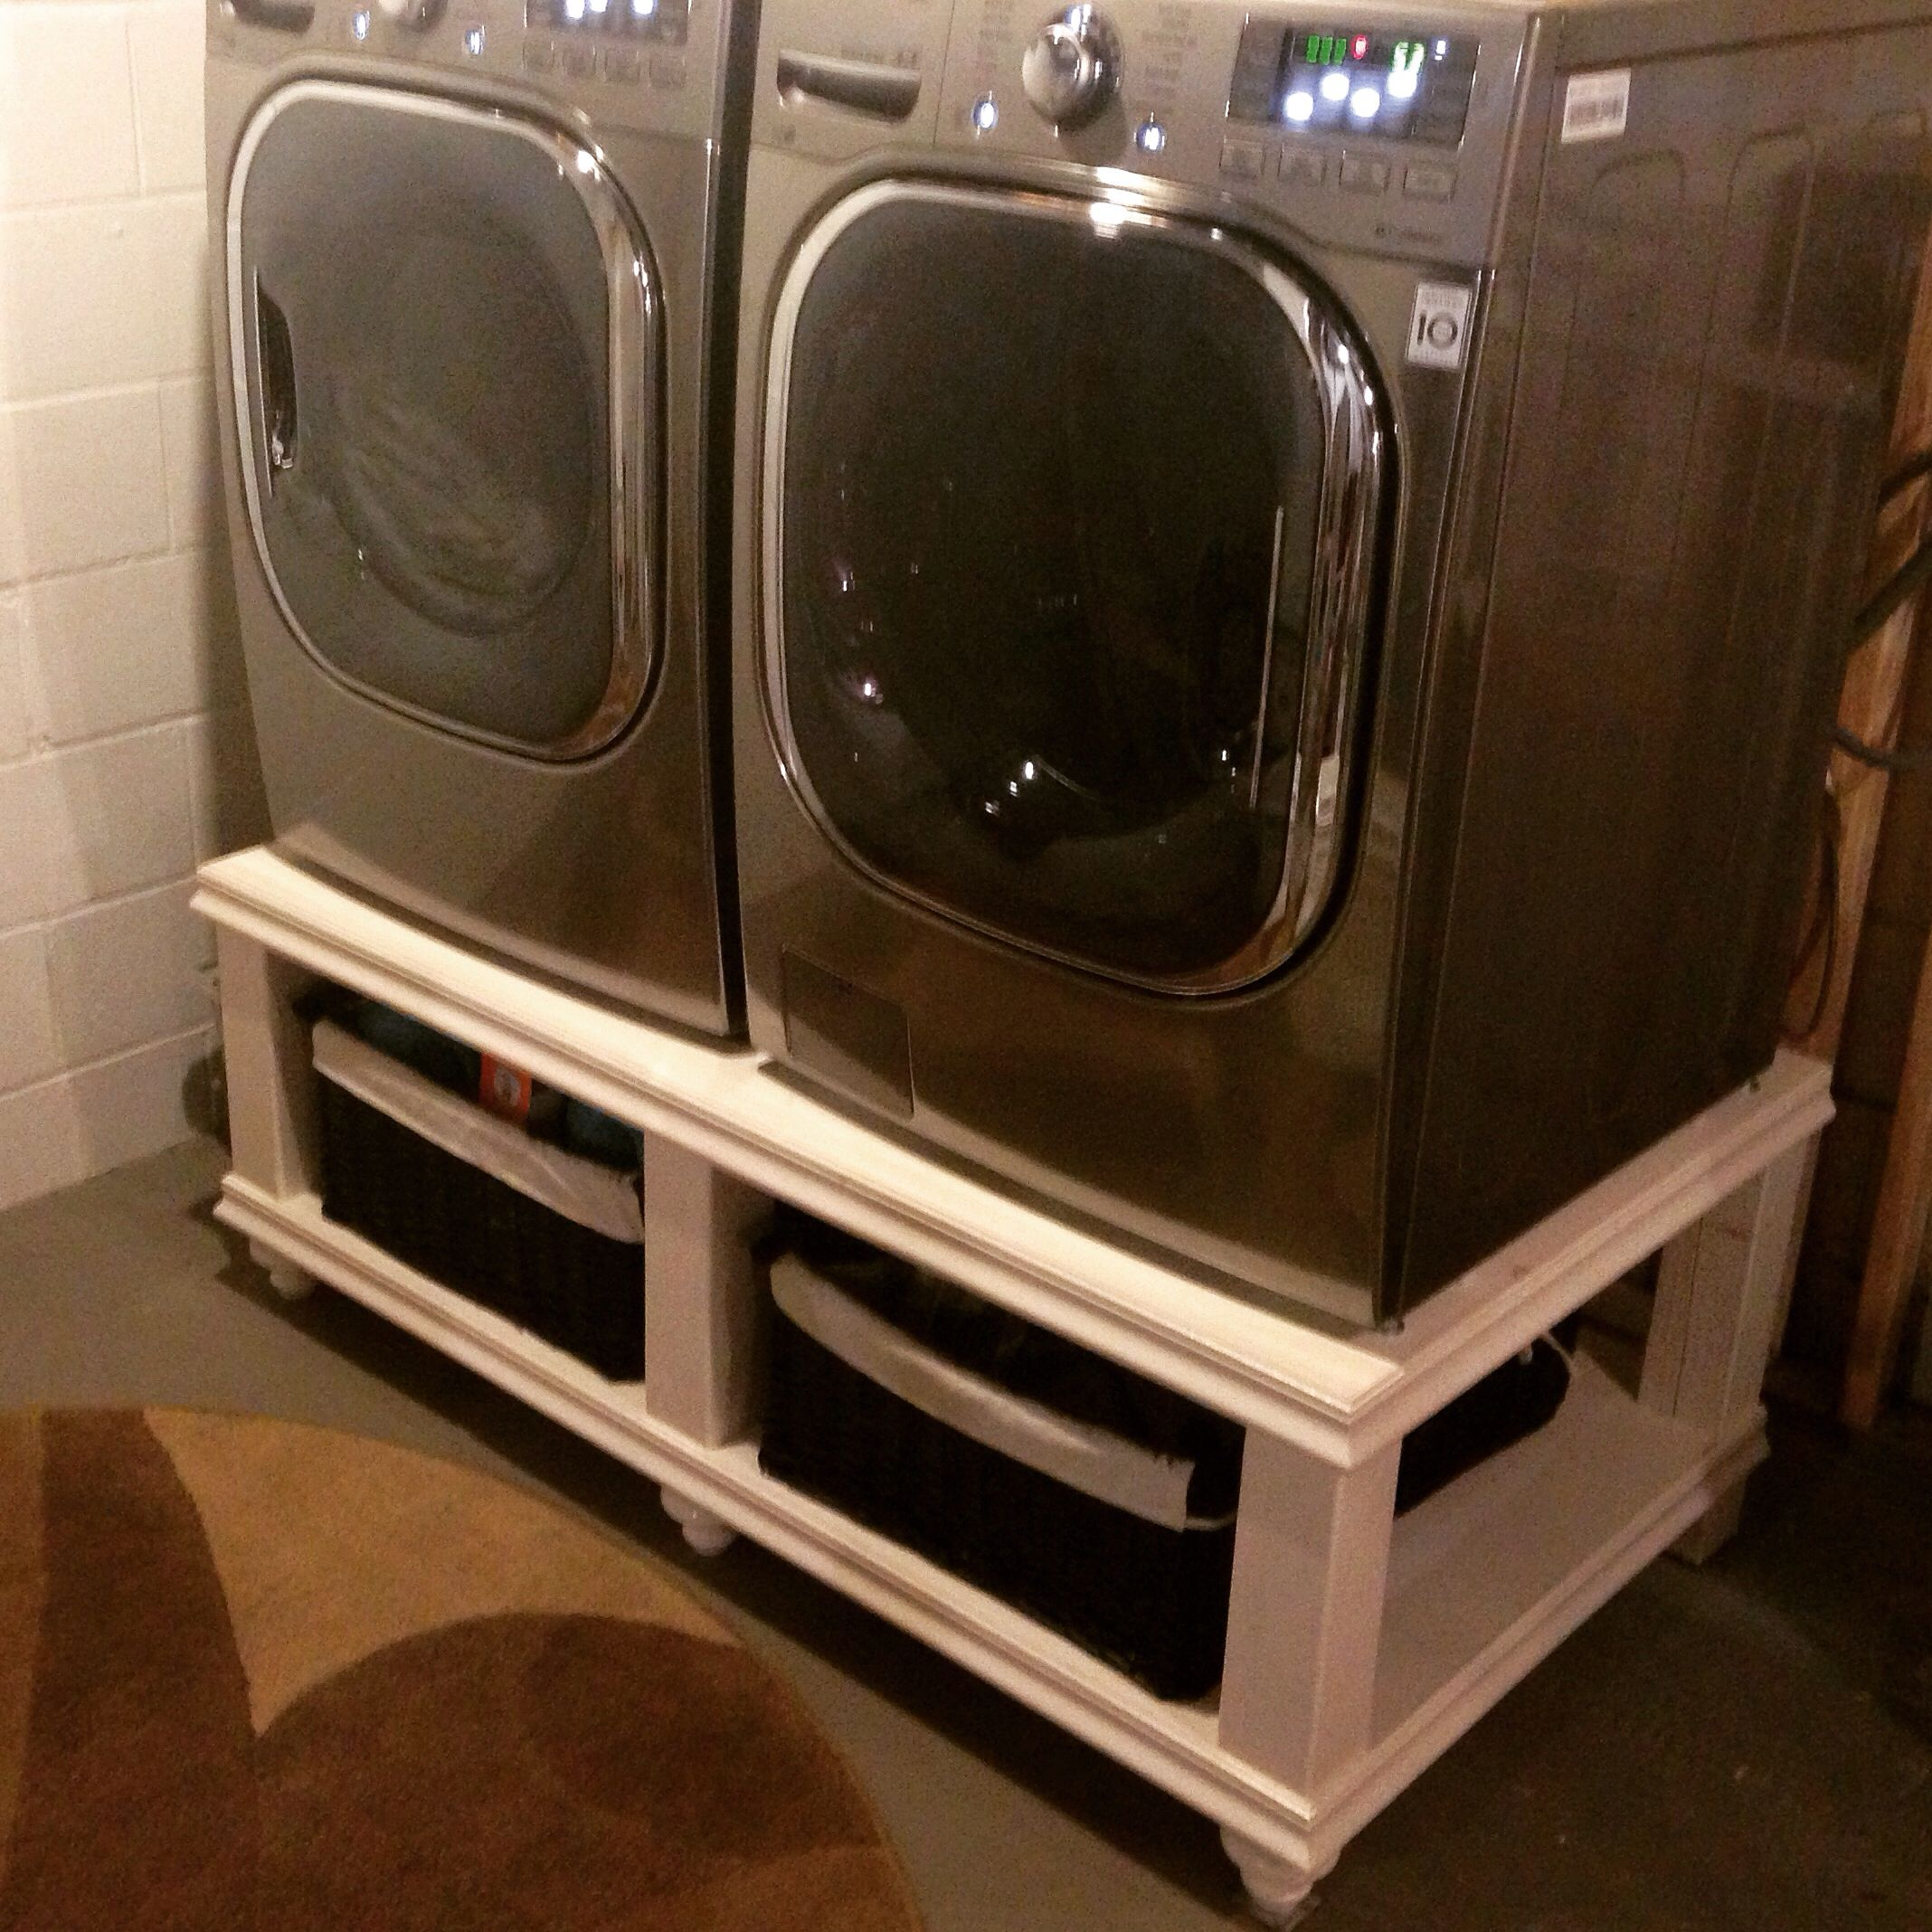 washer dryer your ge for new body and frontload matters ges ergo folding s friendly news clothes height great pedestal